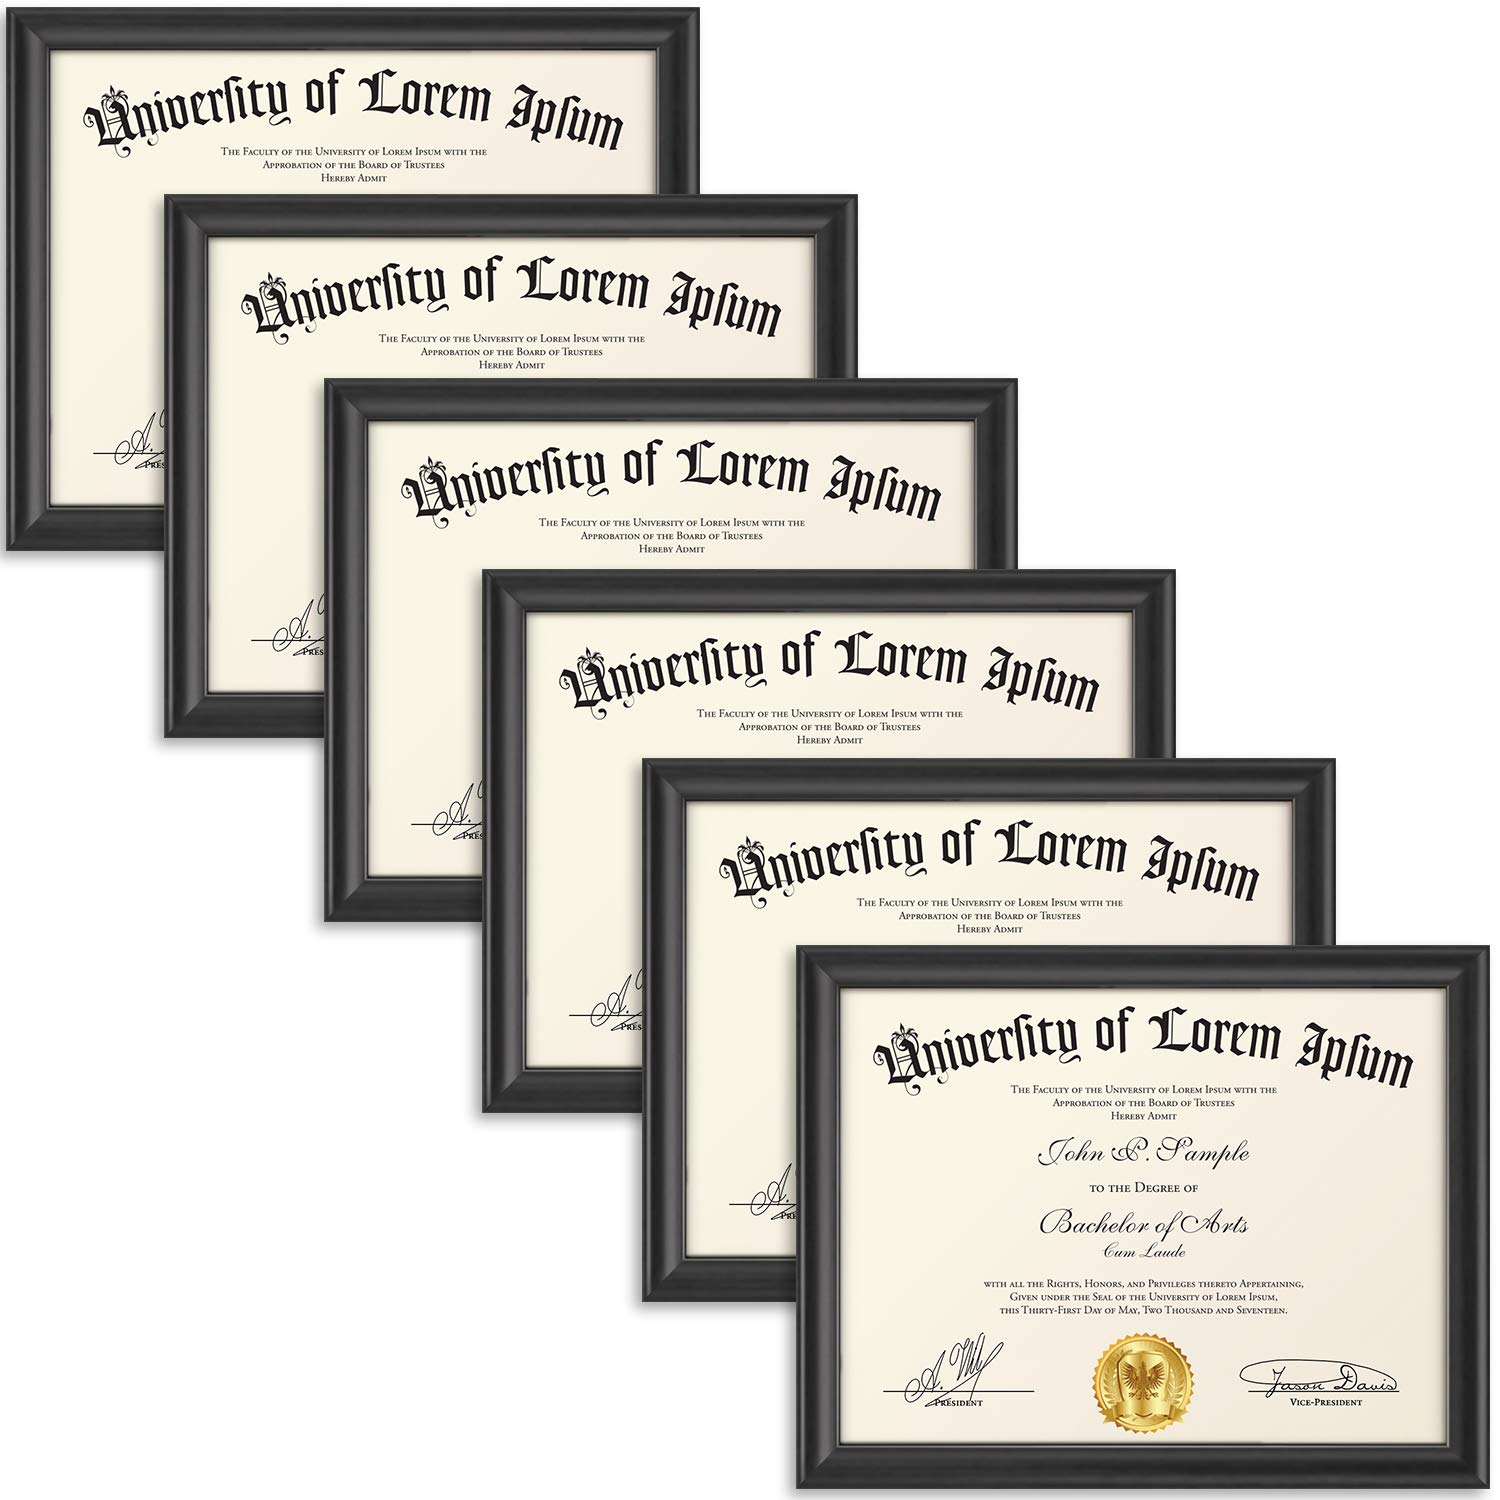 Icona Bay 8.5x11 Diploma Frame (6 Pack, Black), Certificate Frame, Document Frame, Composite Wood Frame for Walls or Tables, Set of 6 Lakeland Collection by Icona Bay